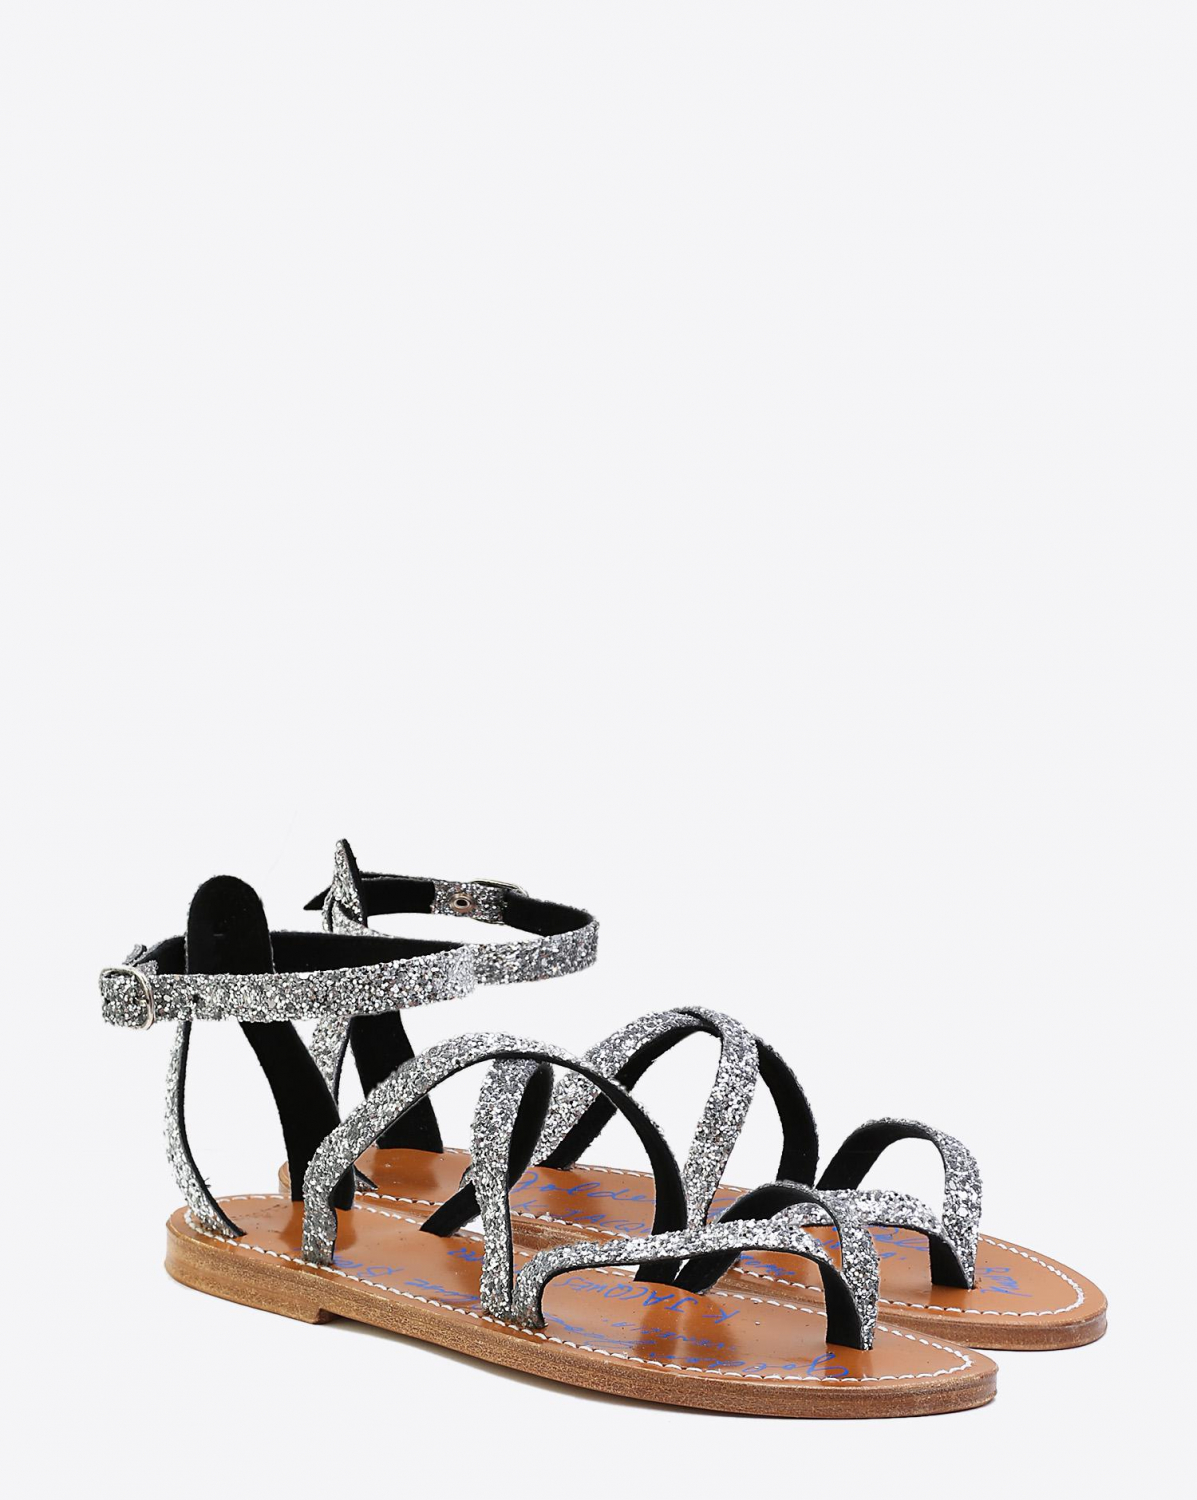 Golden Goose Woman Chaussures Collection Sandales GGDB by K.Jacques - Miel  Silver Glitter